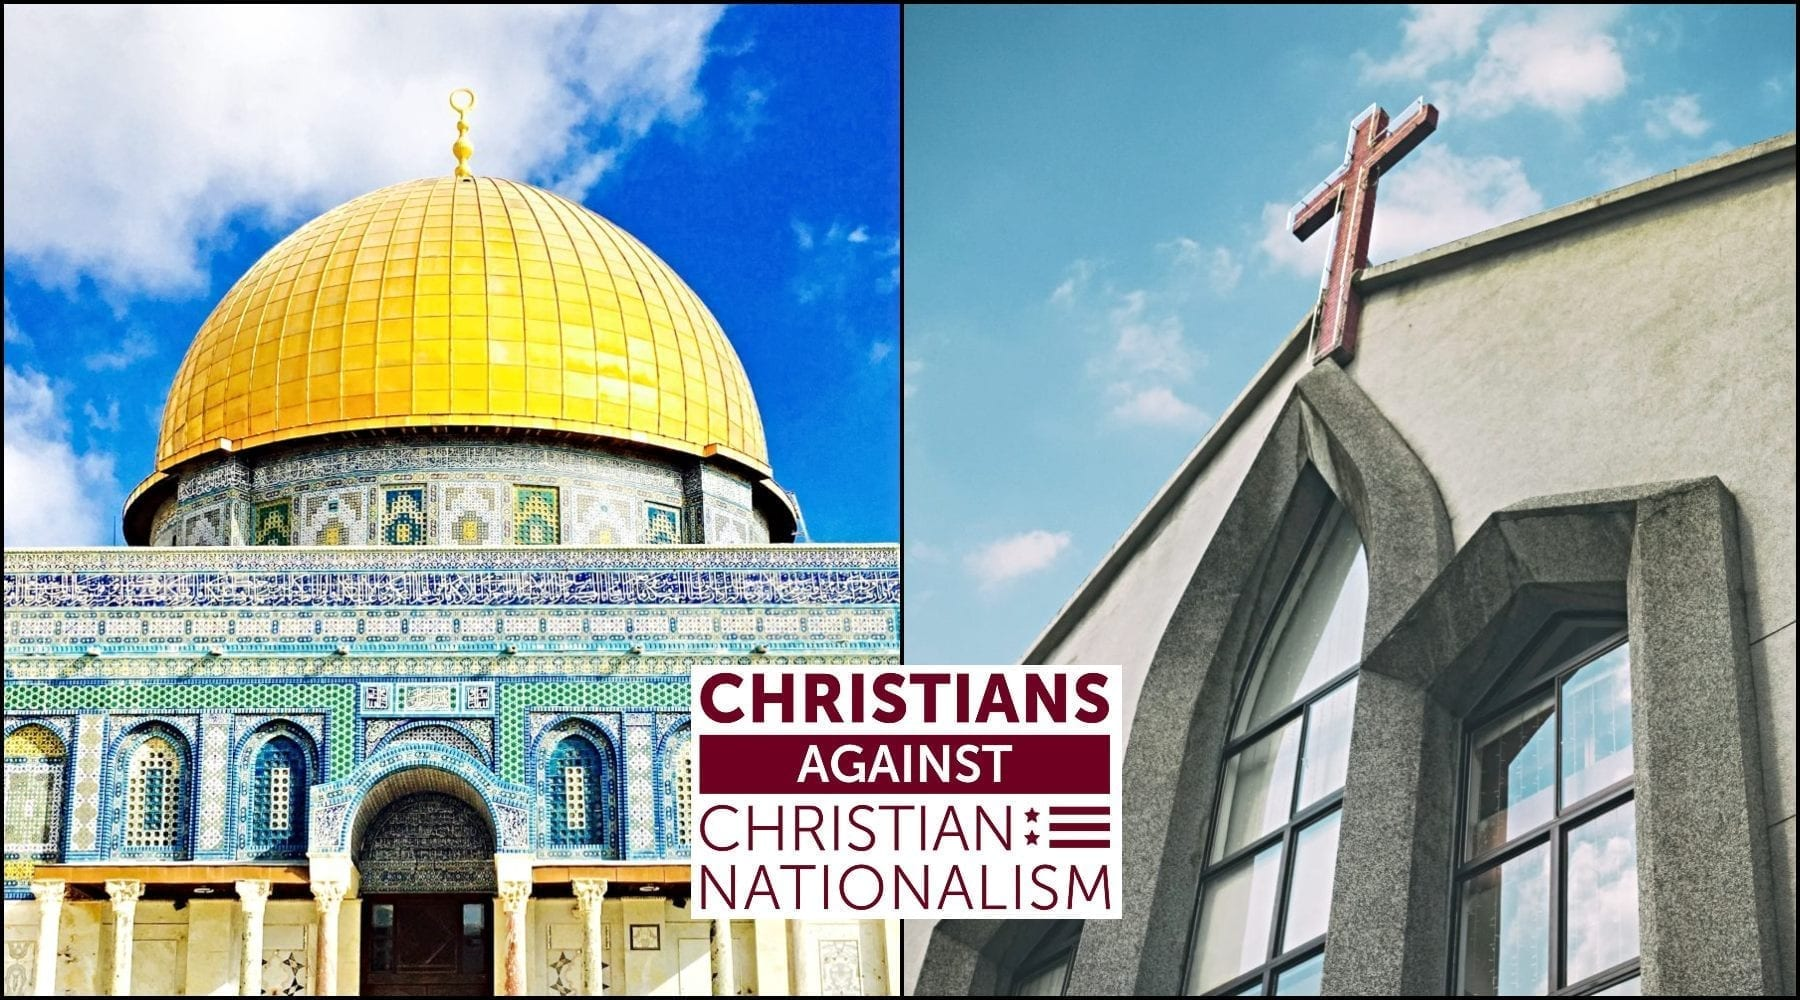 Why You Must Repel Insidious Lies of Christian Nationalism